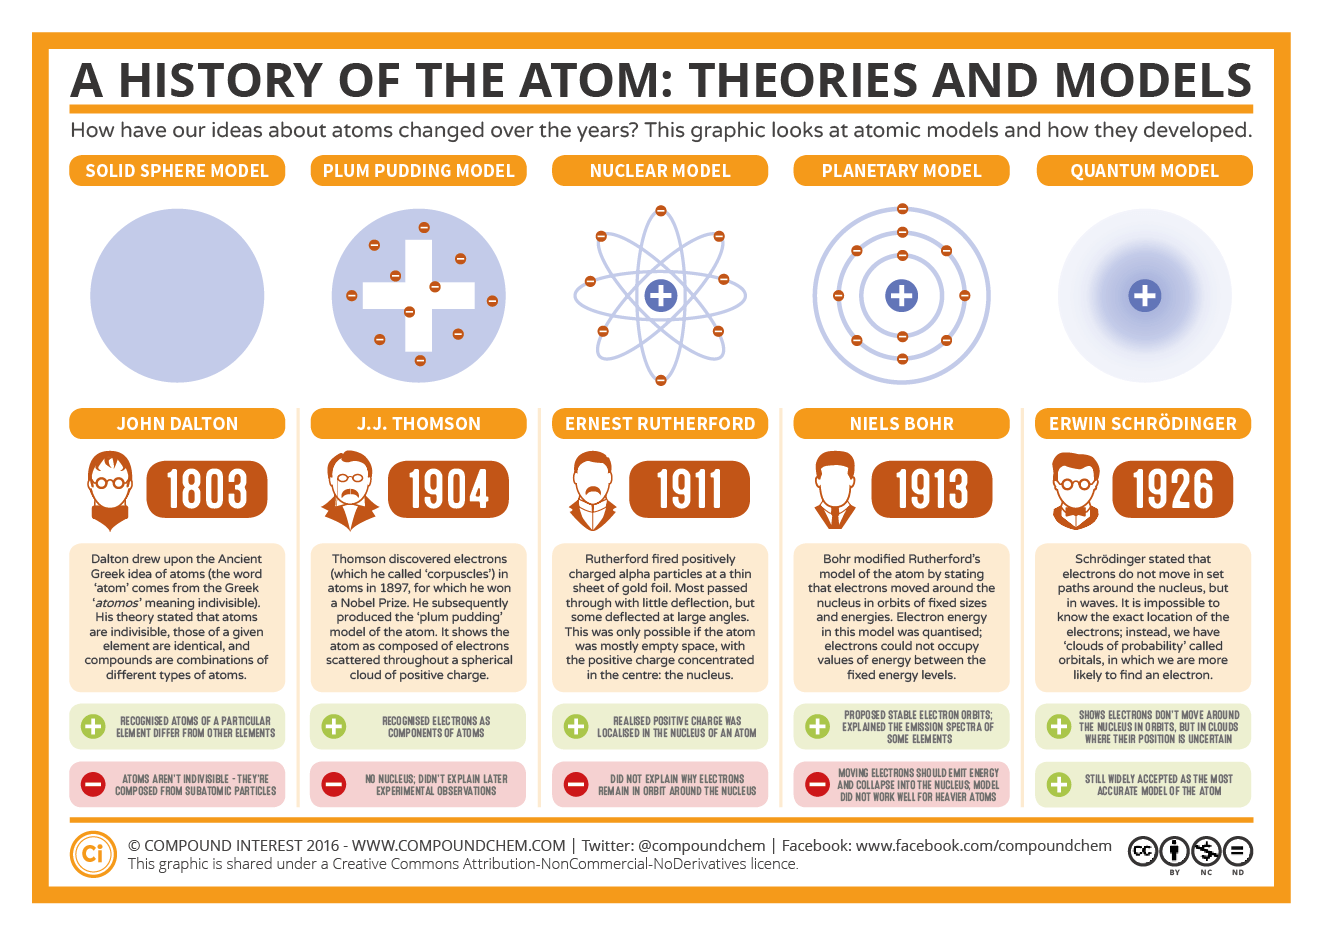 Compound interest the history of the atom theories and models the history of the atom theories and models gamestrikefo Choice Image